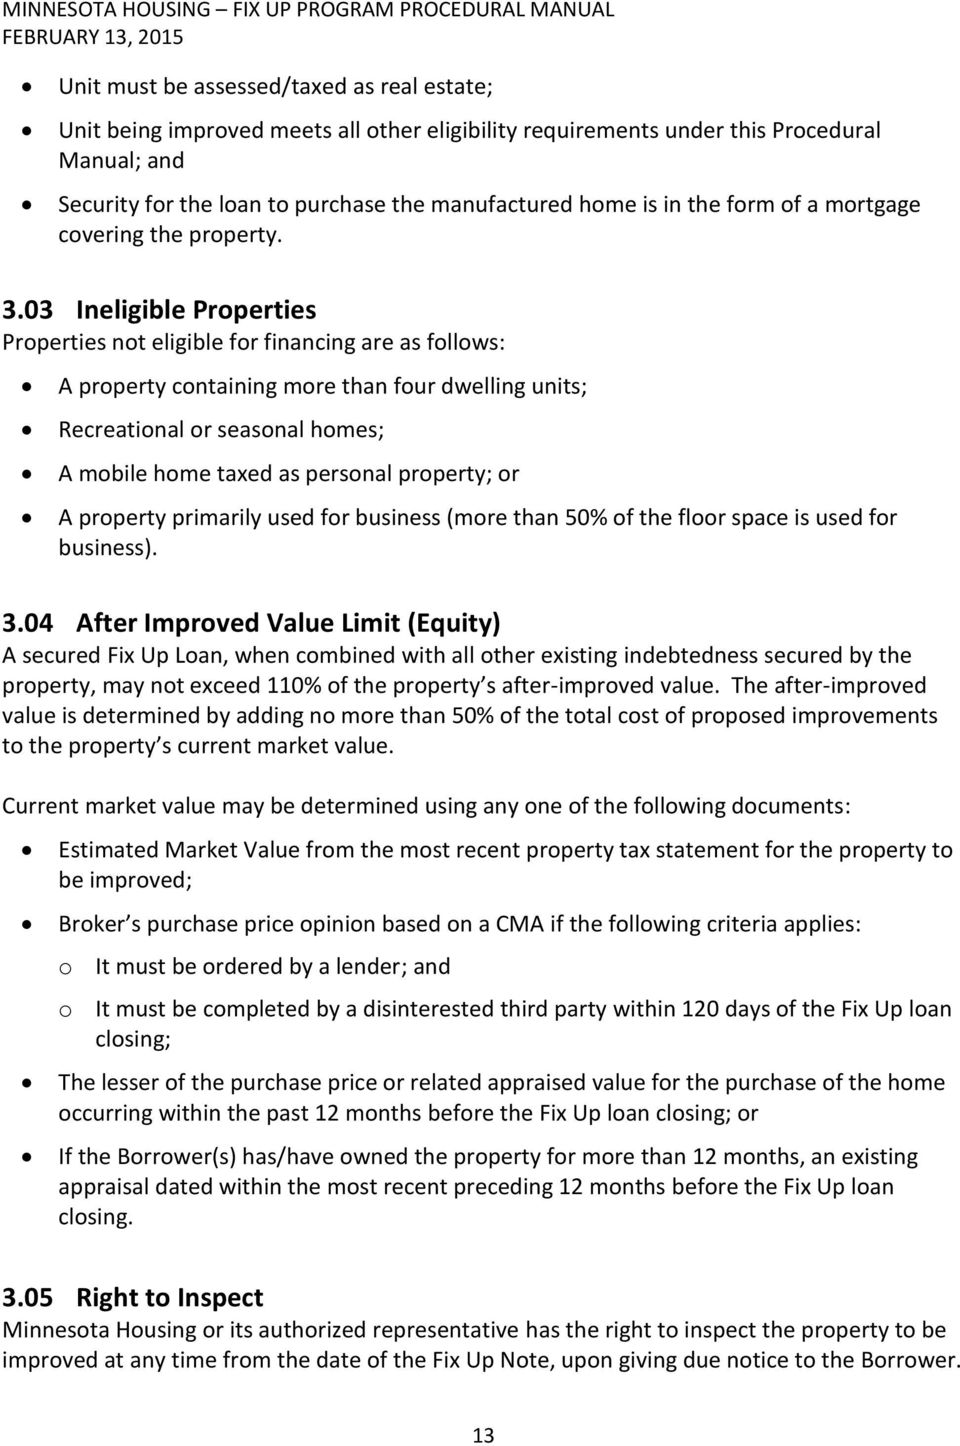 03 Ineligible Properties Properties not eligible for financing are as follows: A property containing more than four dwelling units; Recreational or seasonal homes; A mobile home taxed as personal